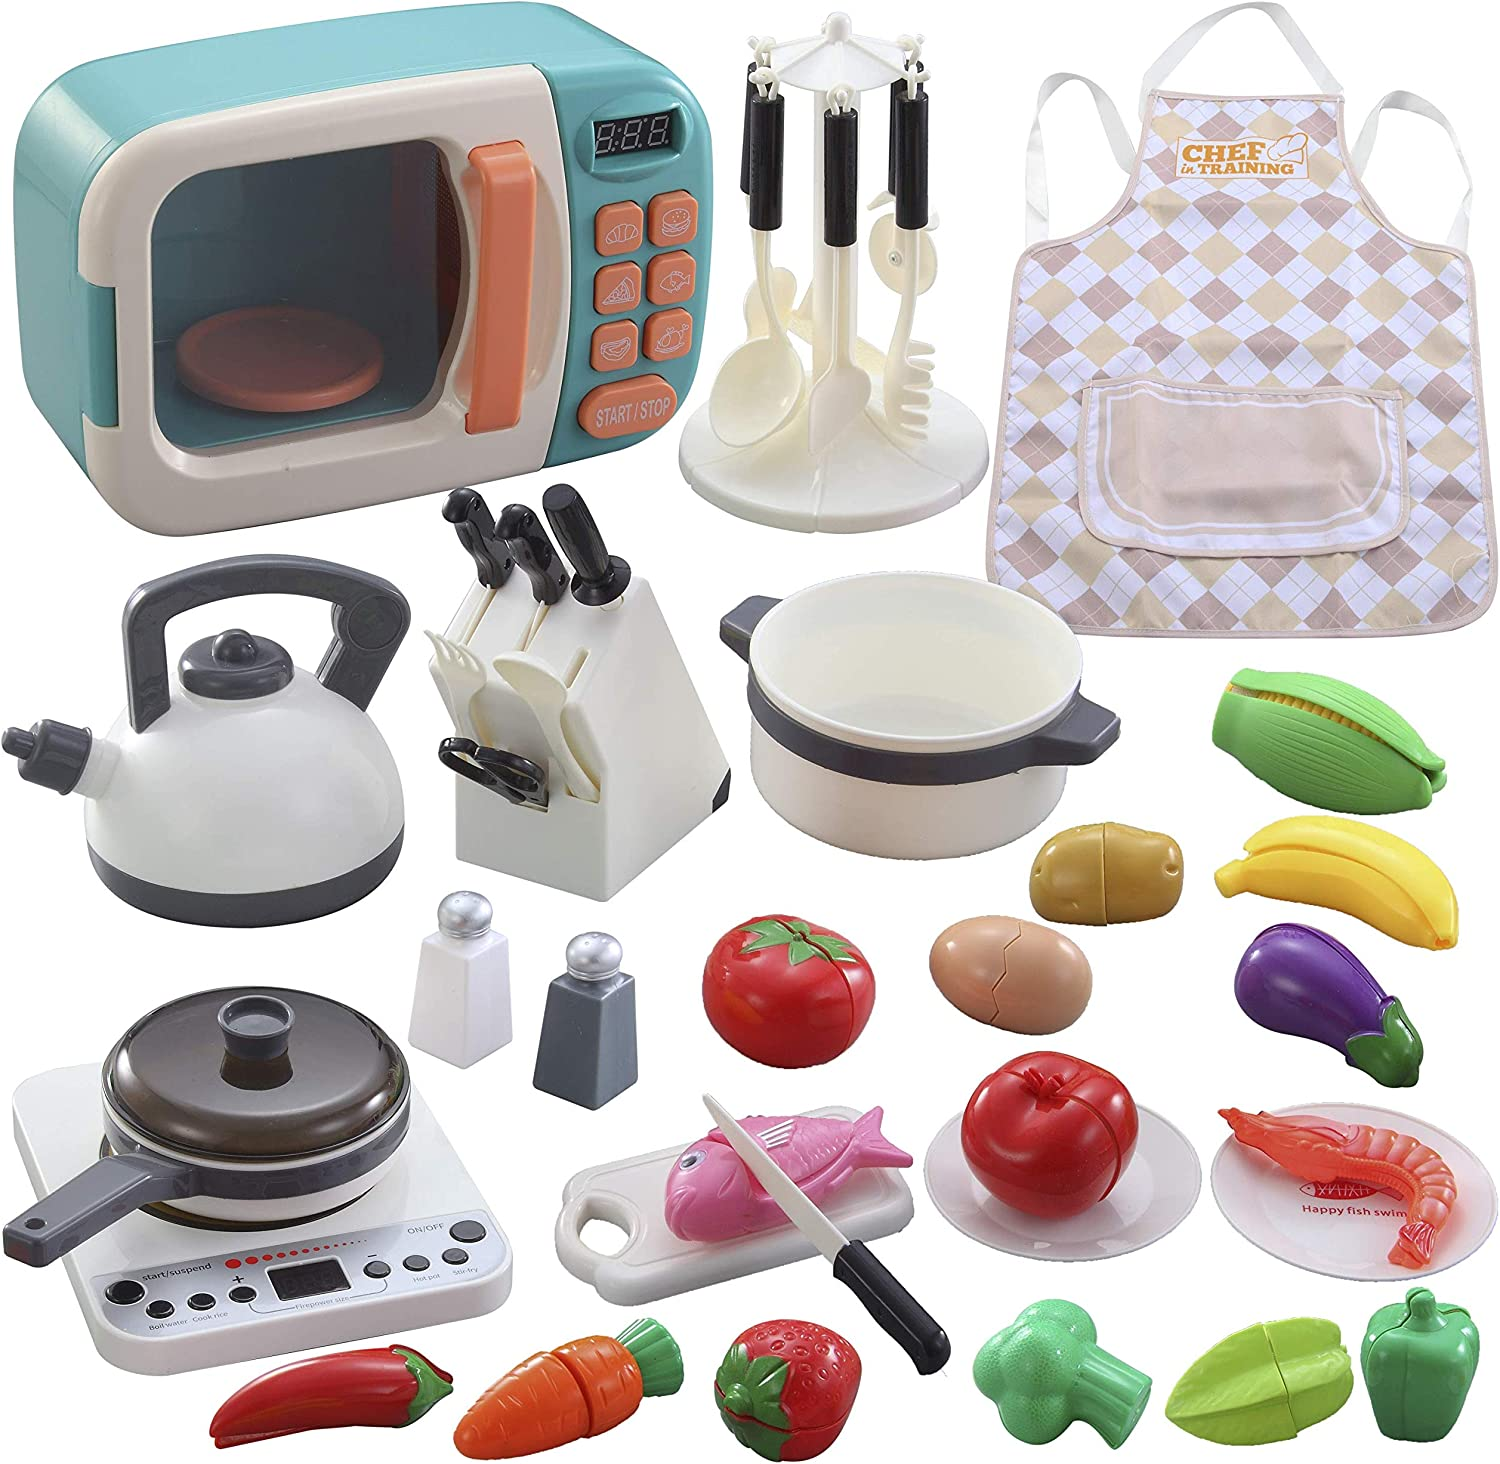 Pretend Play Kitchen Cookware 42-pcs Kids toy with Microwave, Electronic Induction Cooktop, Cookware Pot and Pan, Cooking Utensils and cutting play food Great Learning Gifts for Toddlers Girls Boys